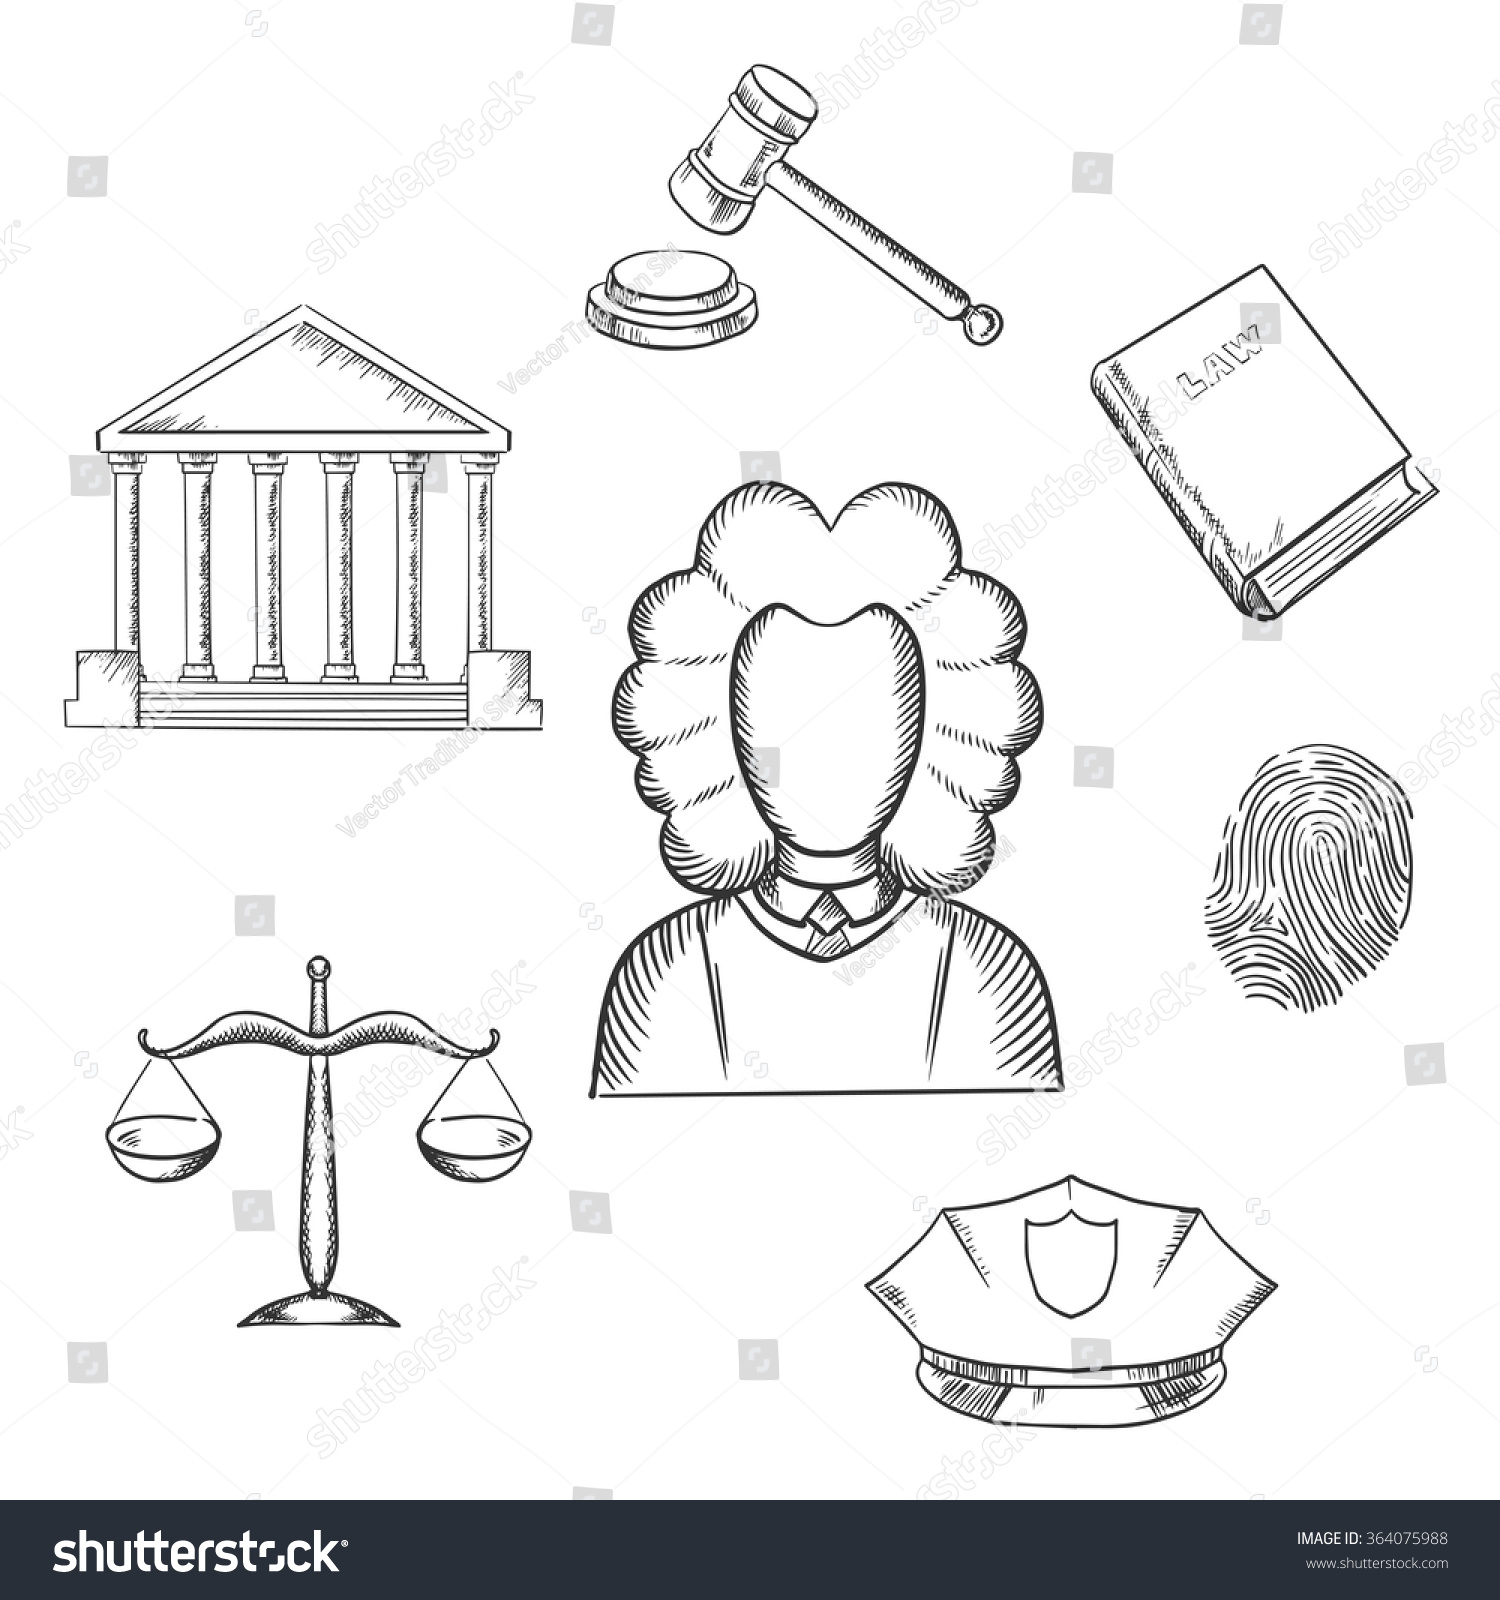 Law Justice Sketch Icons Surrounding Lawyer Lager vektor